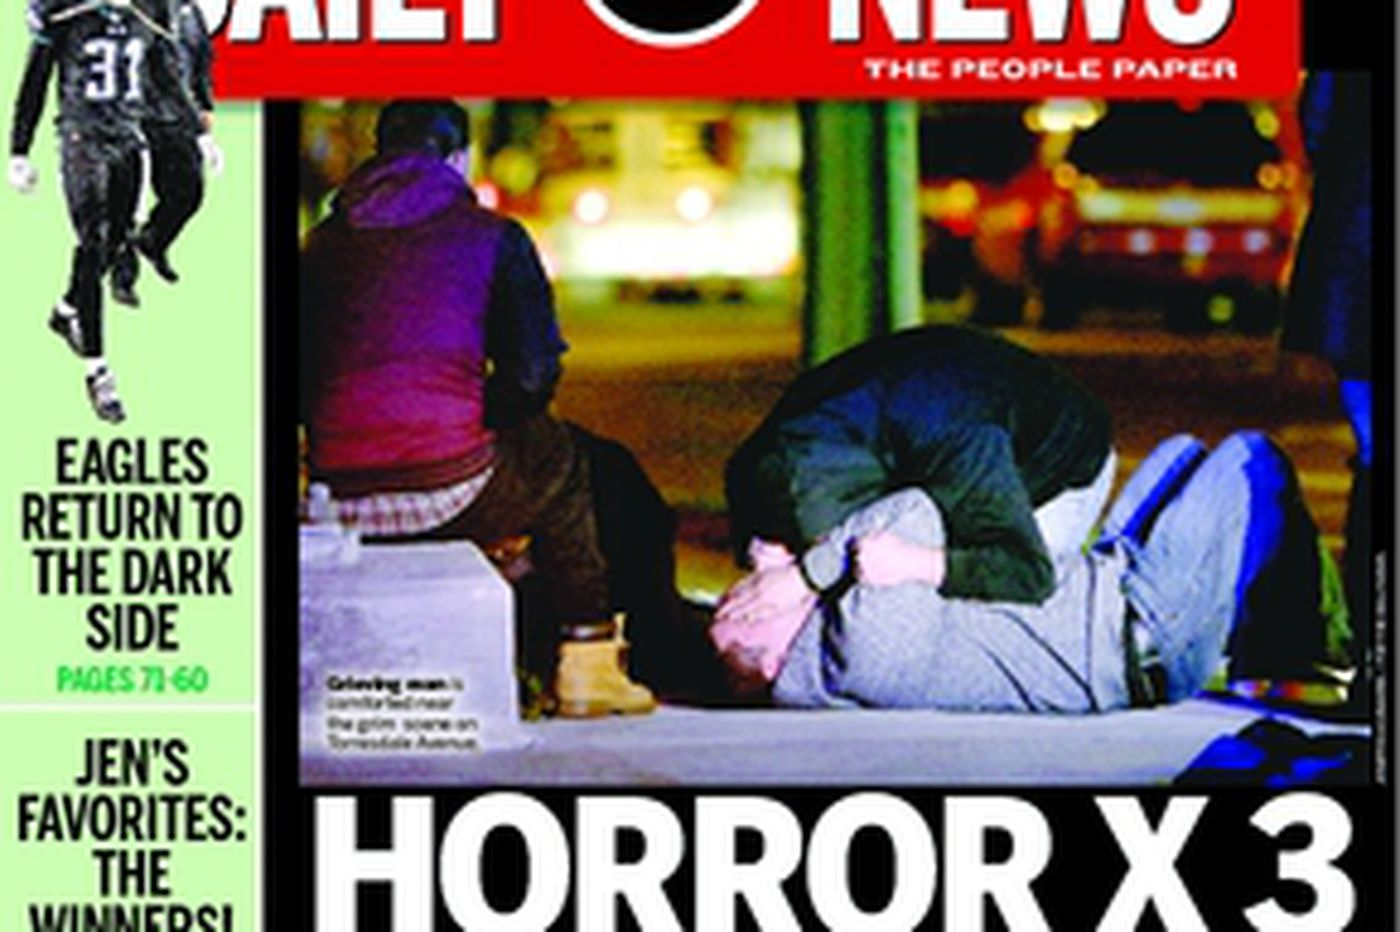 Dailynews Monthly Covers 12/21/15